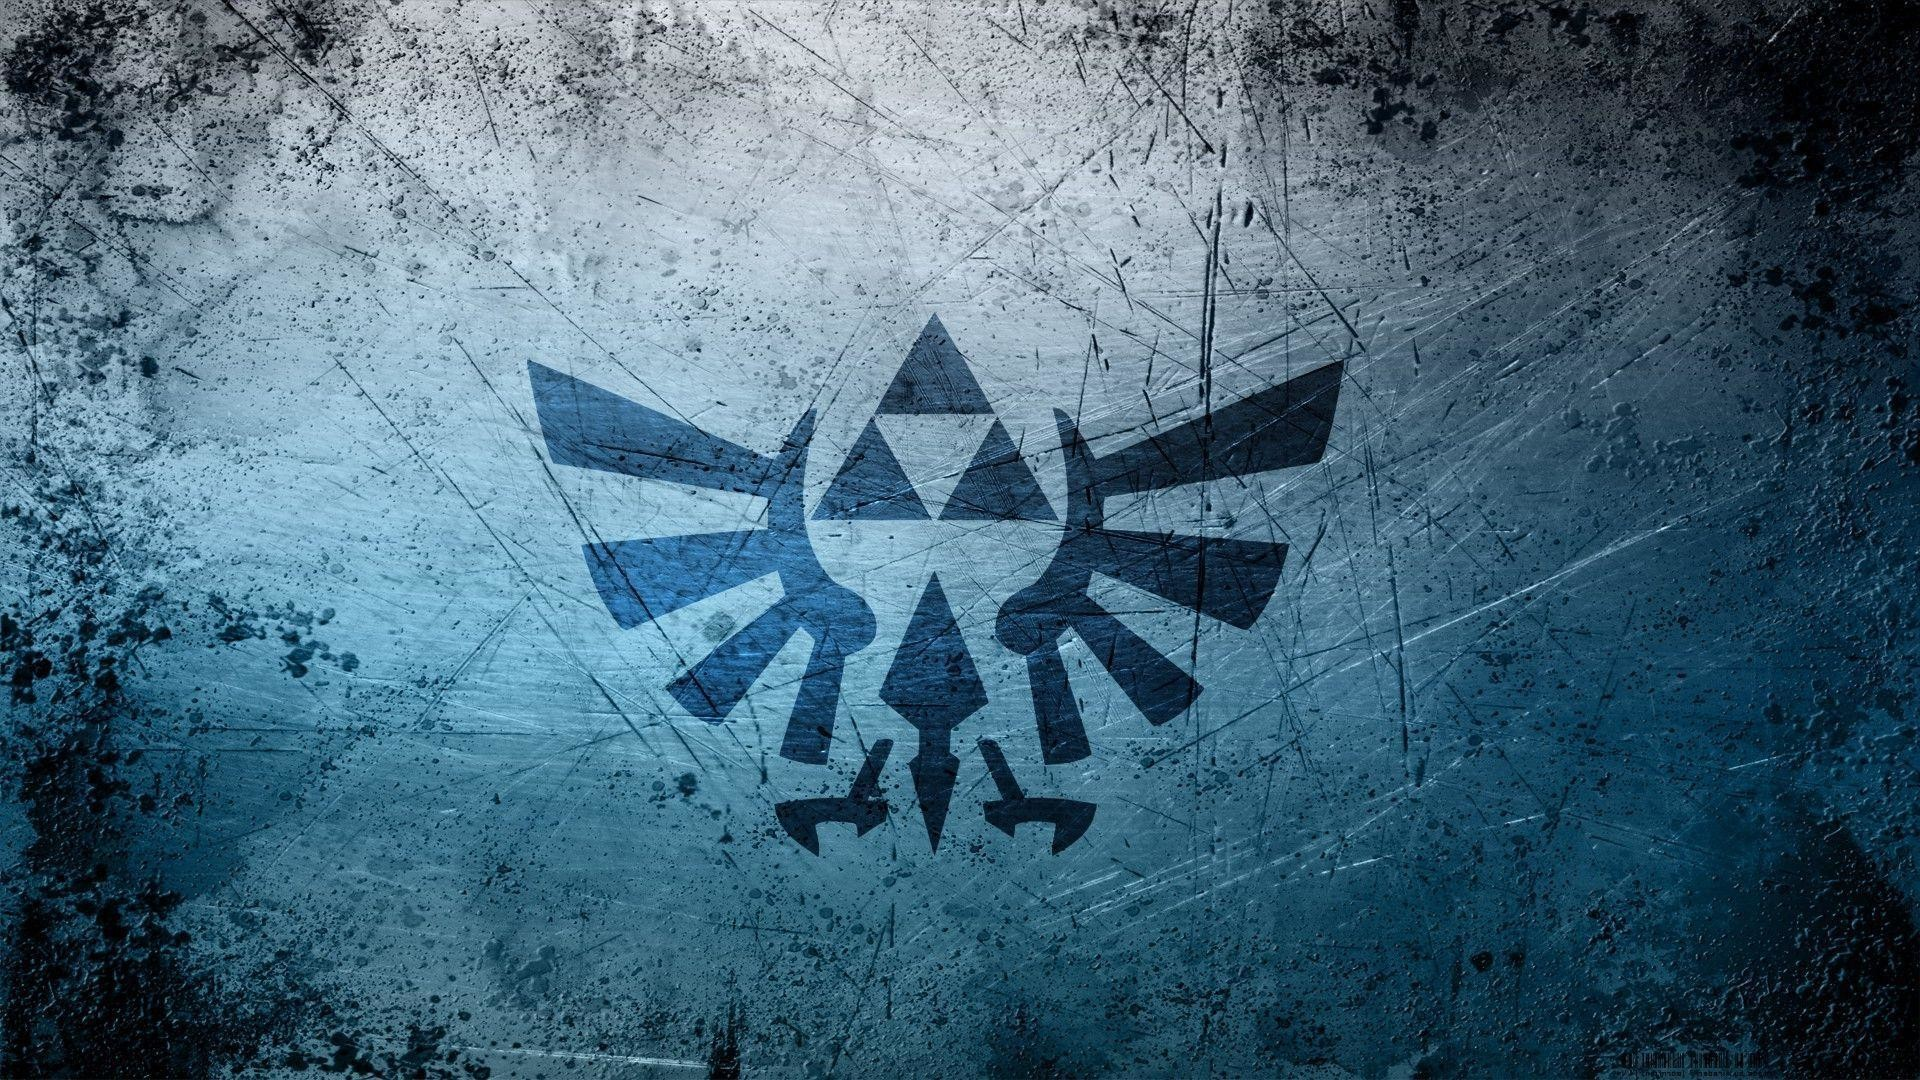 Legend Of Zelda Backgrounds Wallpapertag